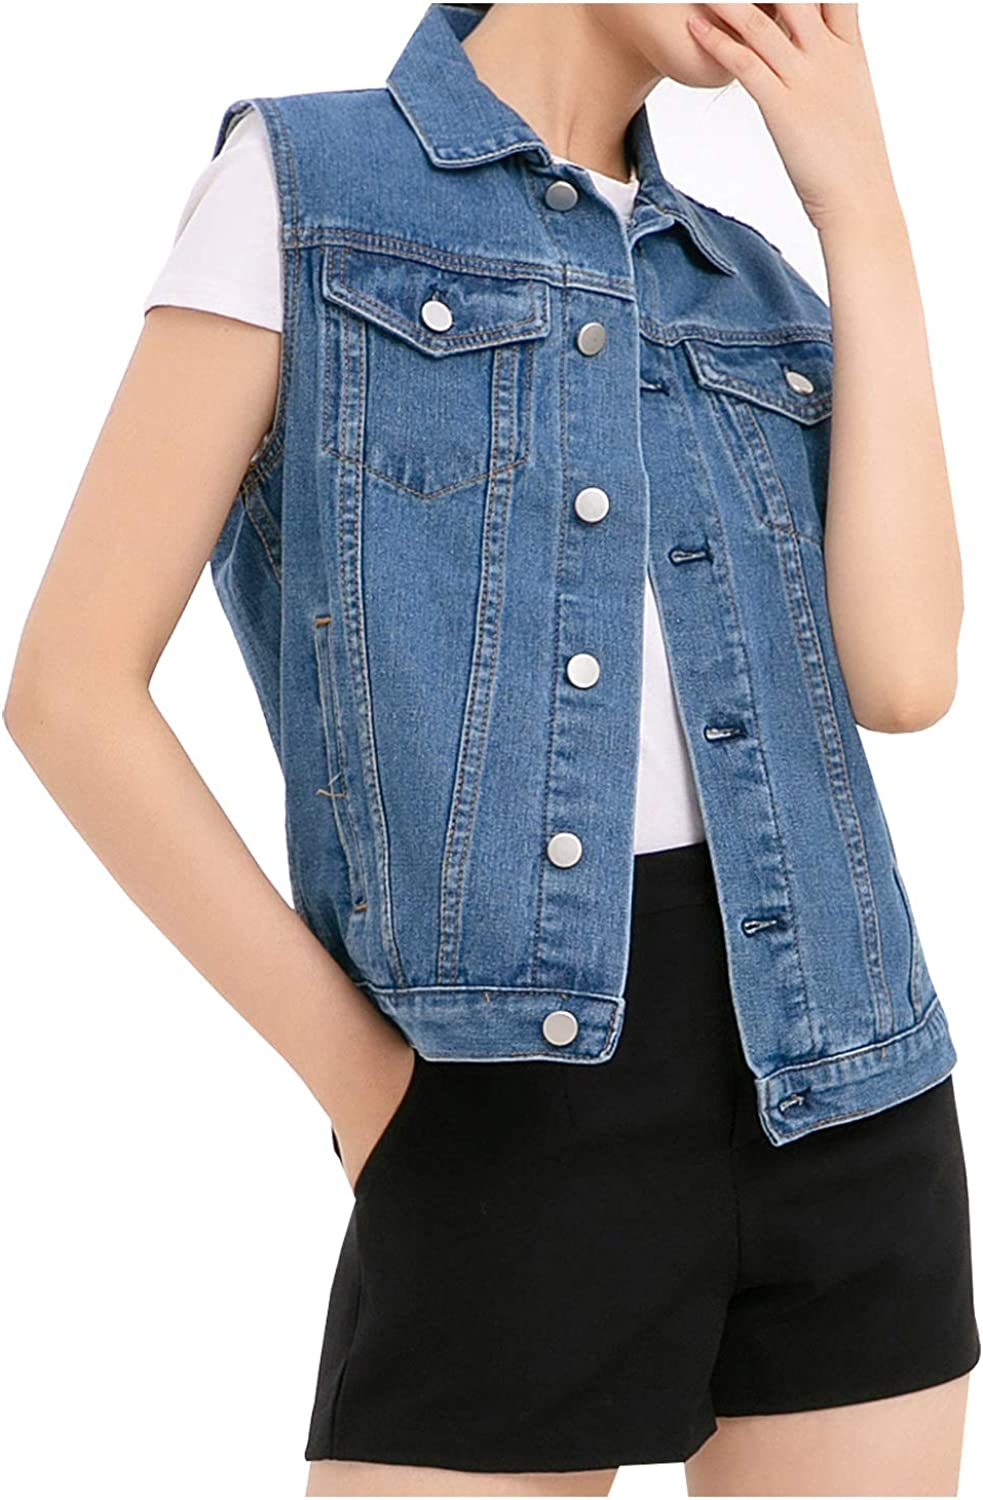 Ladyful Wome's Distressed Ripped Vest レビューを書けば送料当店負担 Denim Sleeveless 新生活 Motocycle